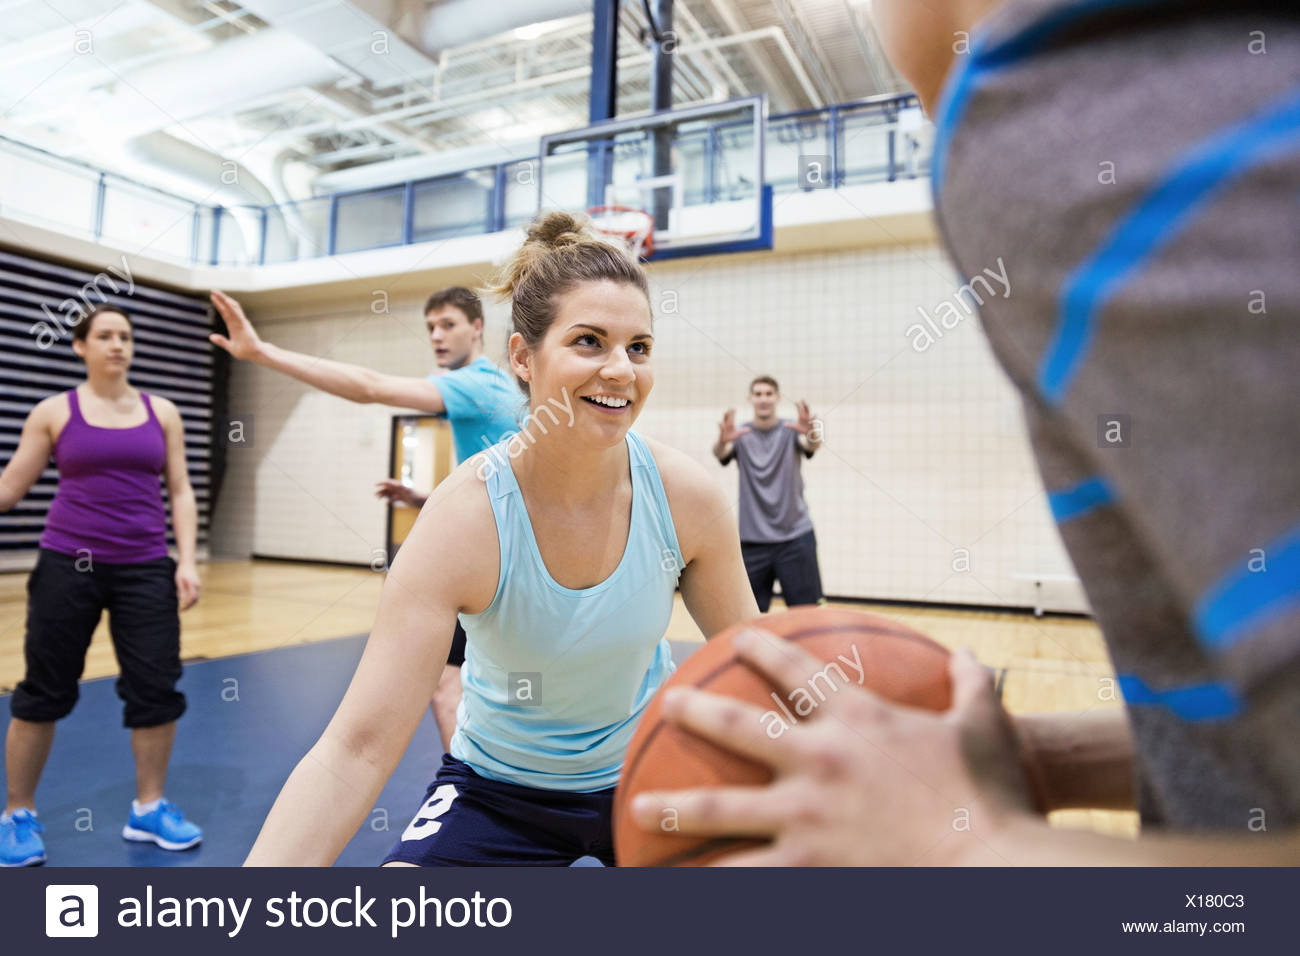 A Woman Playing Basketball Imágenes De Stock A Woman: Basketball Training Stock Photos & Basketball Training